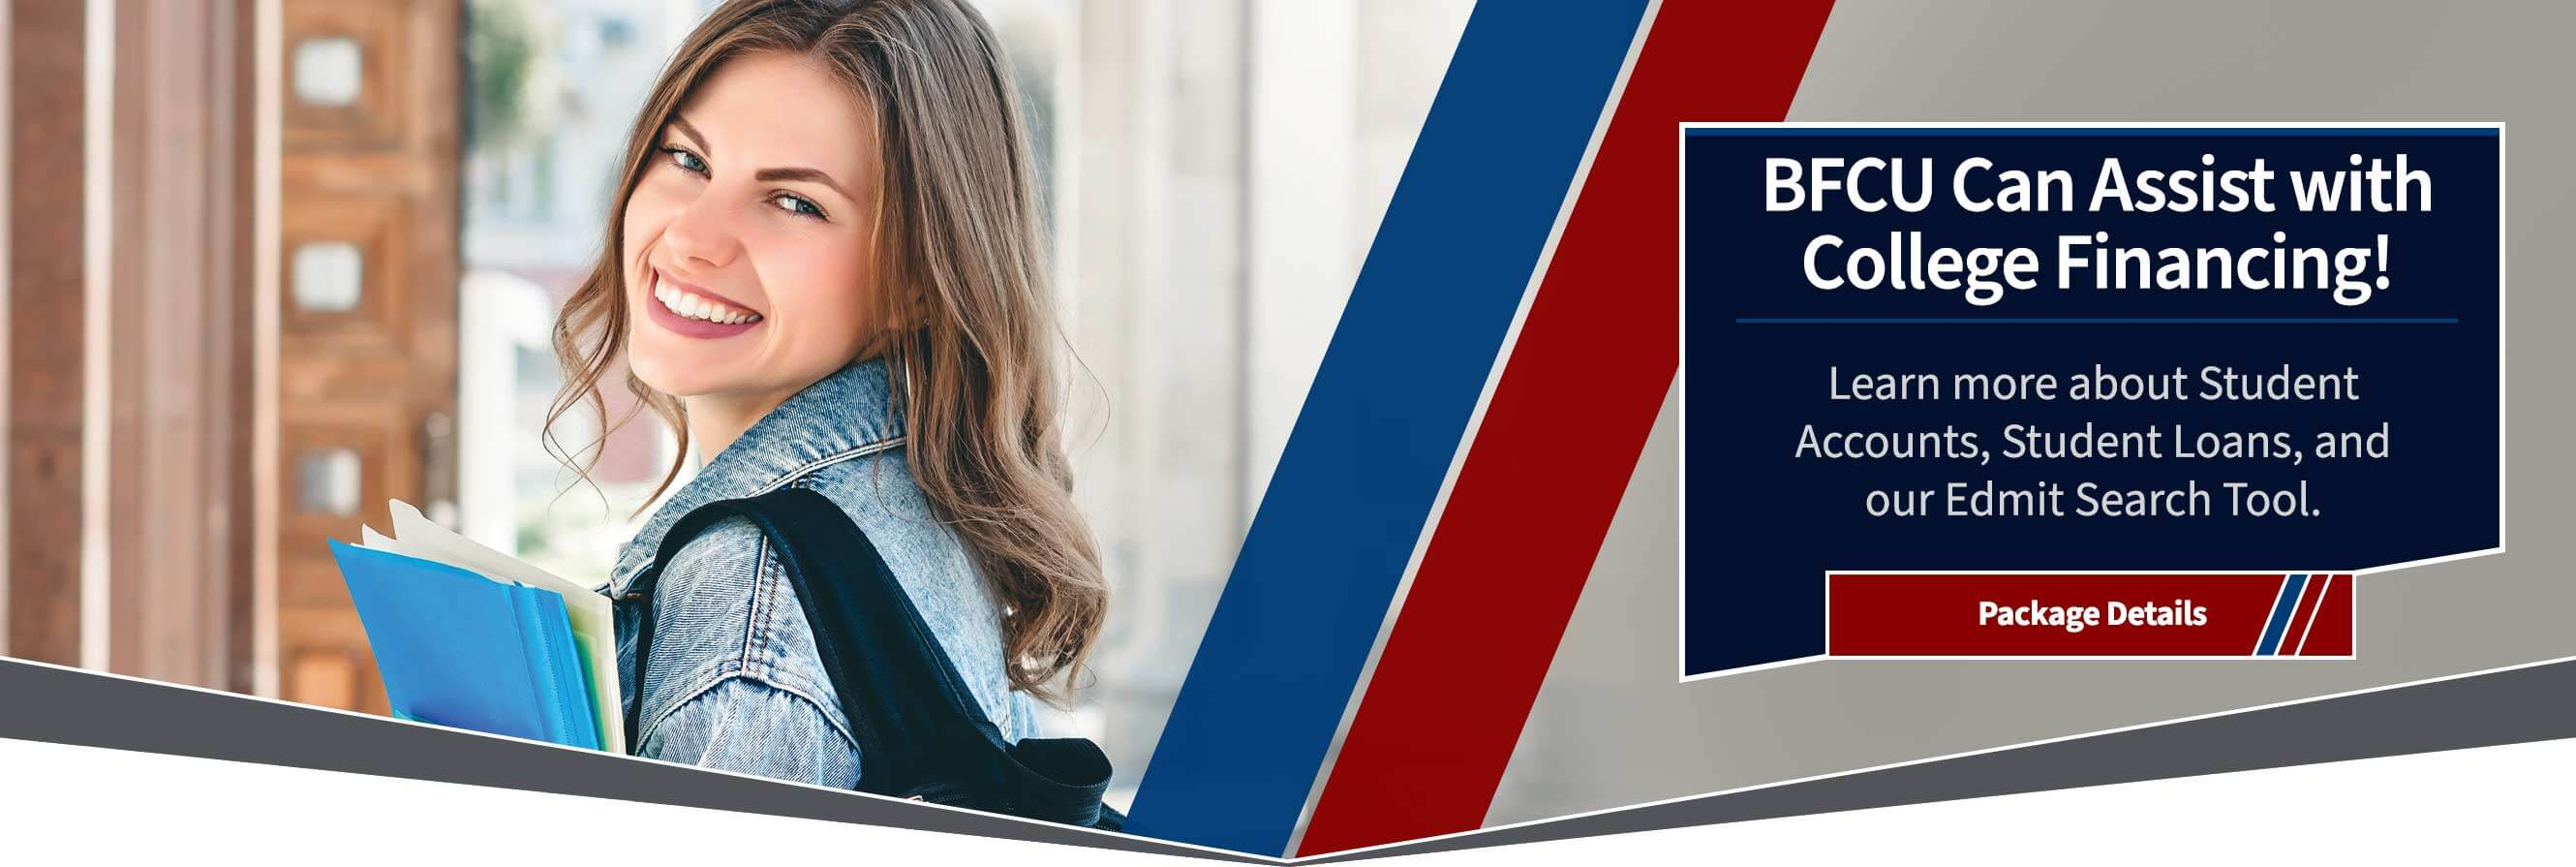 BFCU can assist with college financing!  learn more about student accounts, student loans, and our edmit search tool.  Package details